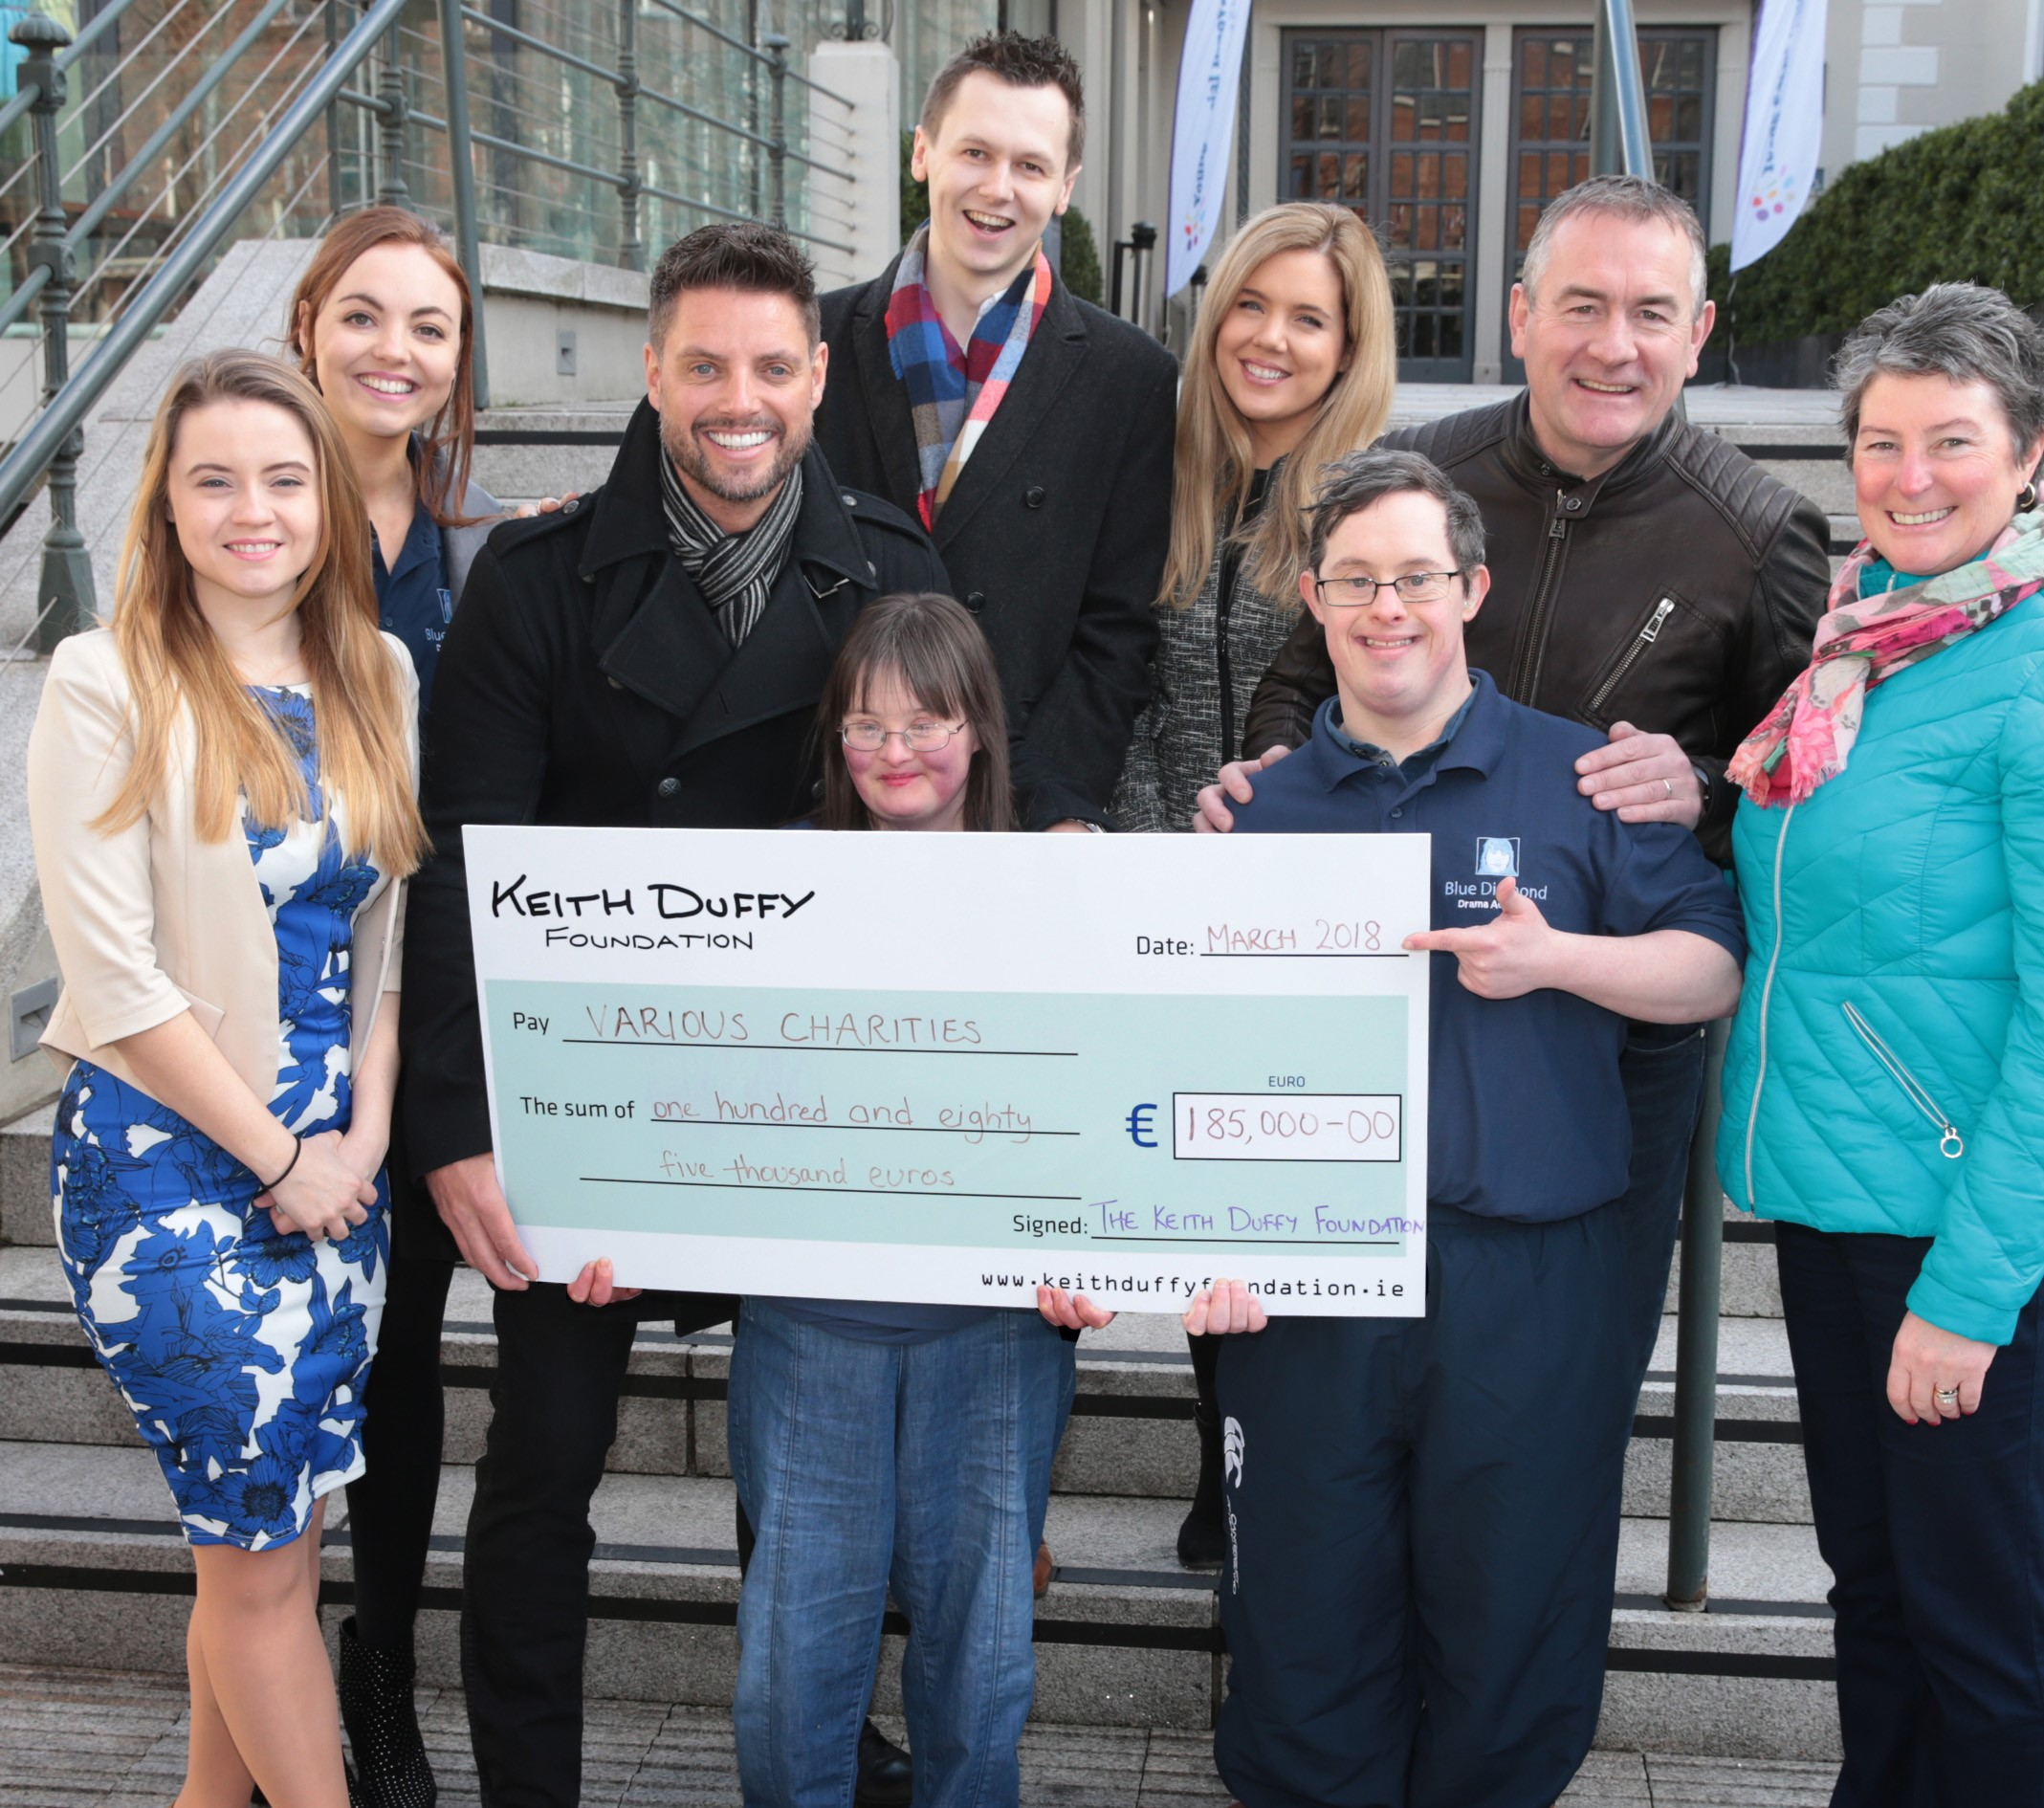 Children's charity helping families, Keith Duffy